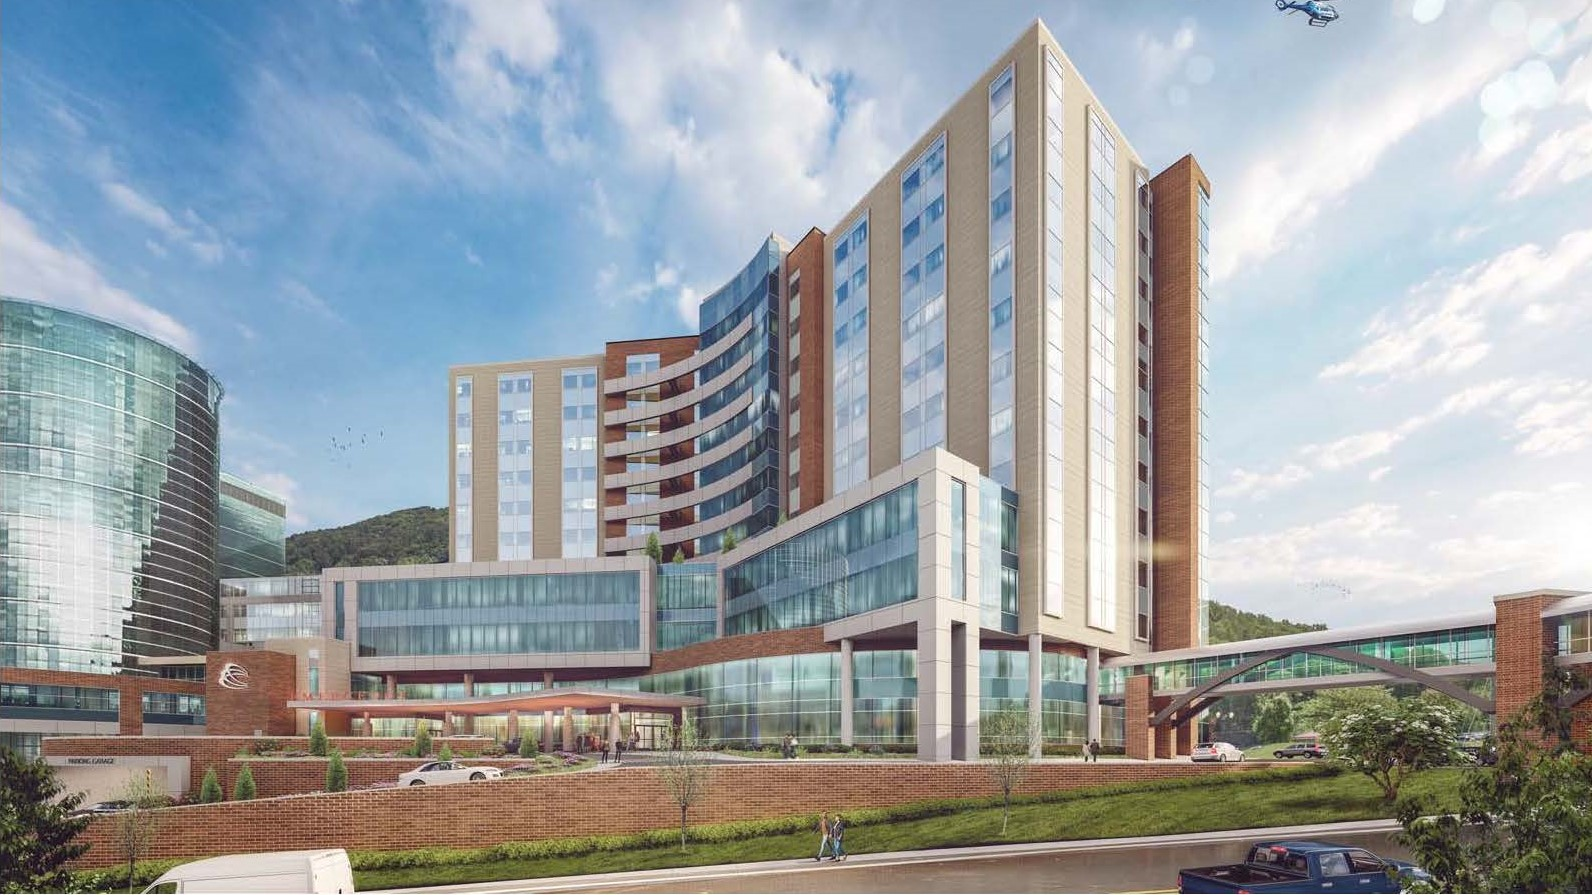 2019.10.29 Carilion_Exterior Renderings_updated 11-11-2019_Page_1